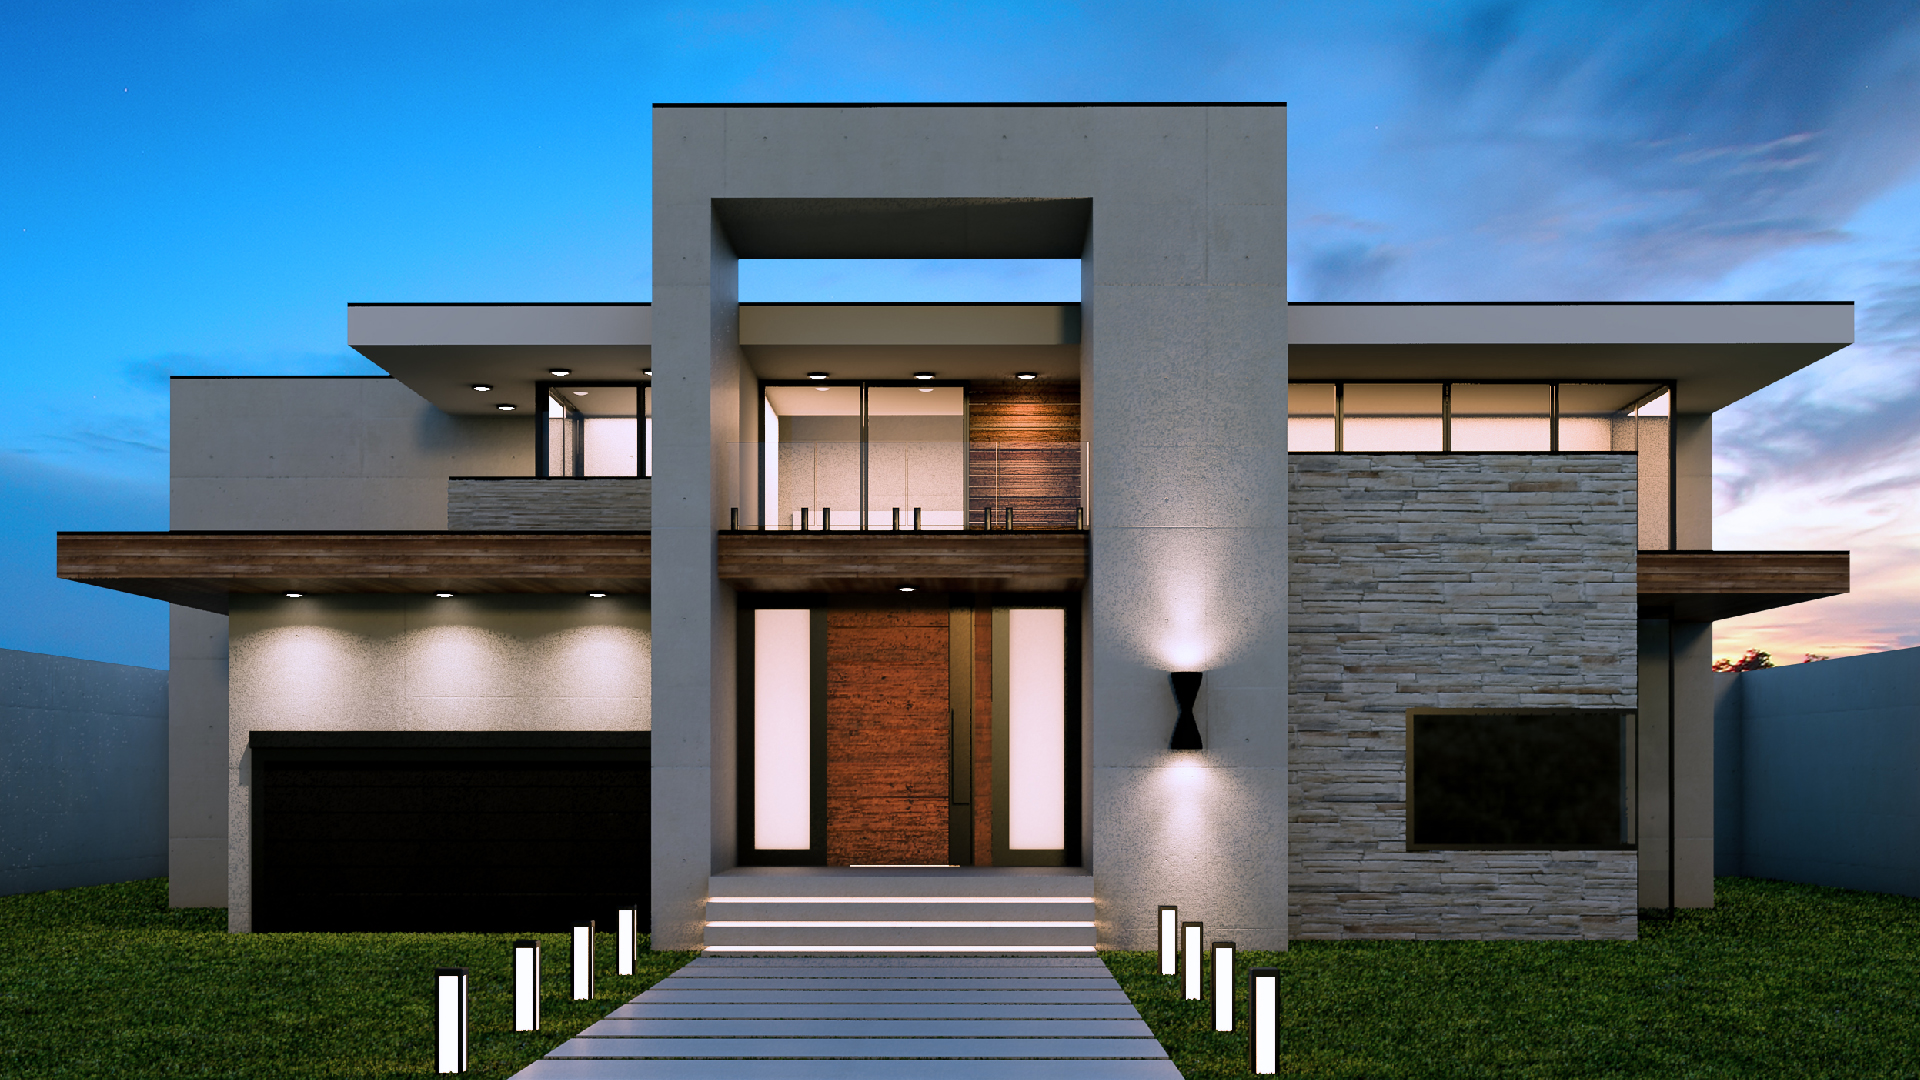 Exterior rendering strategies with v ray and 3ds max for Exterior 3d rendering